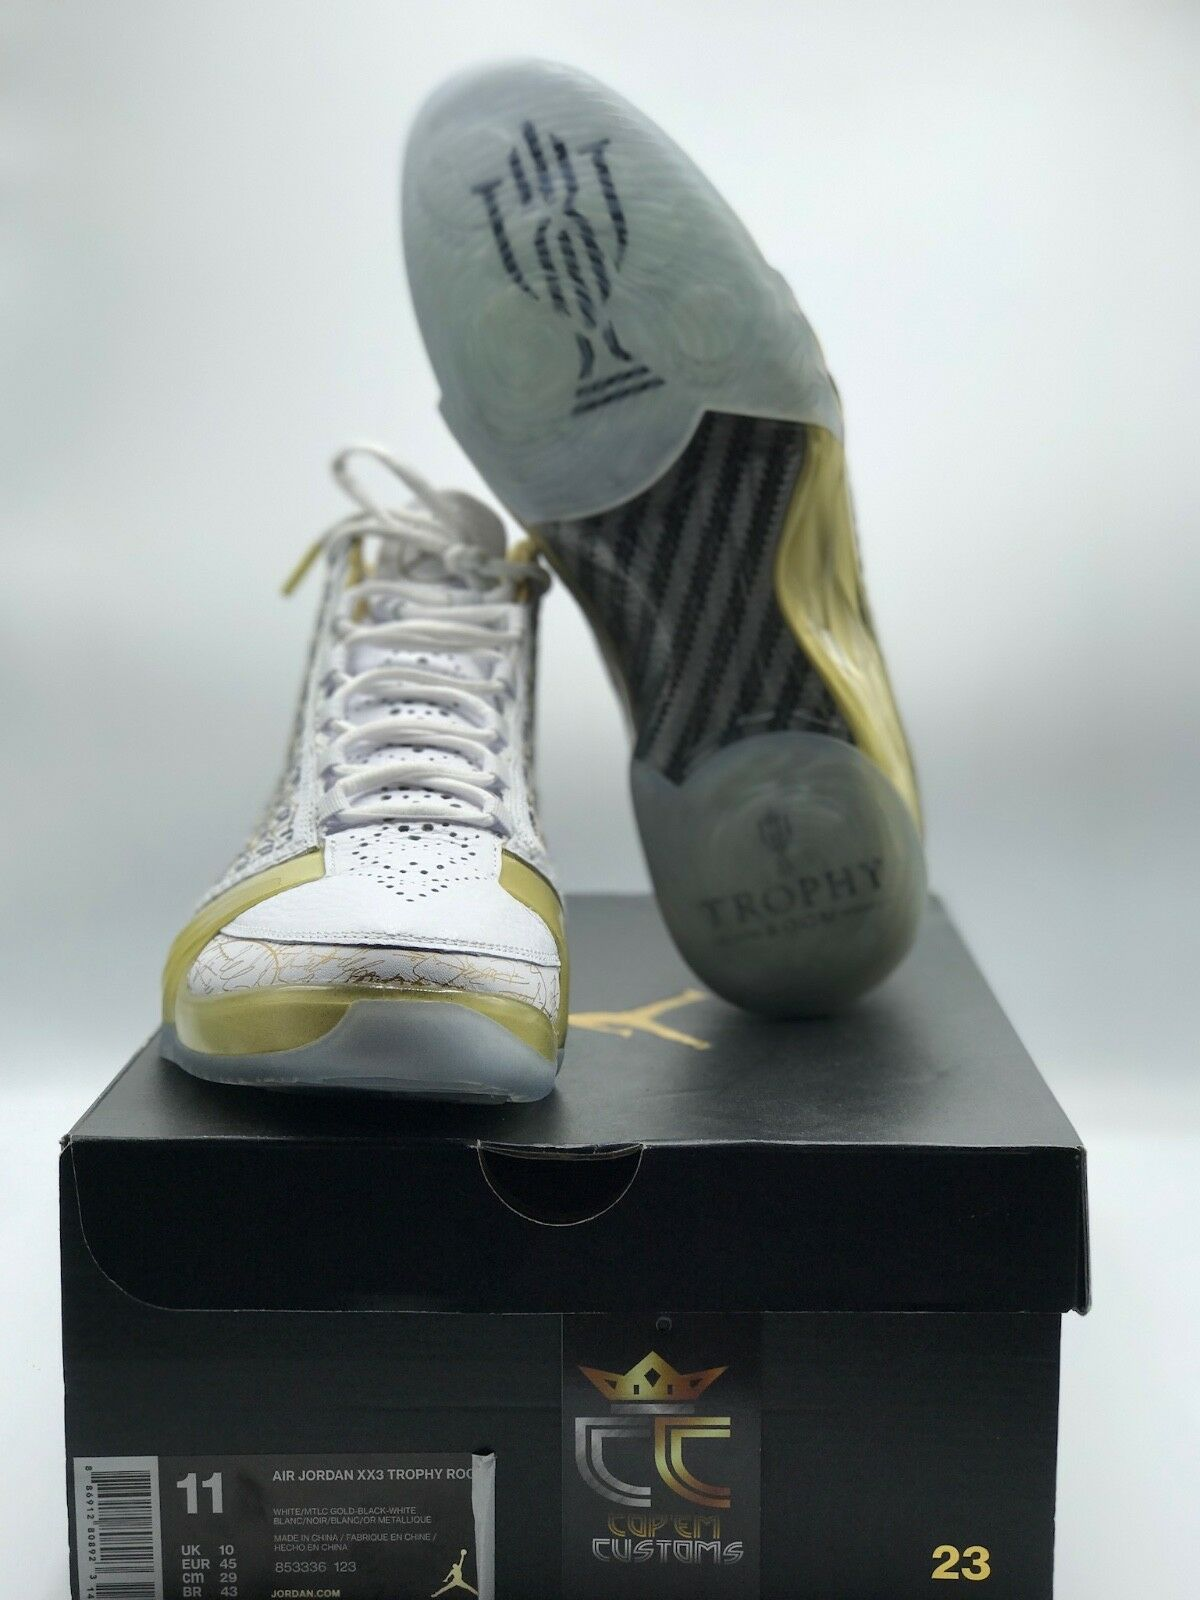 PRE-OWNED Air Jordan XX3 'Trophy Room White' SIZE 11 STYLE